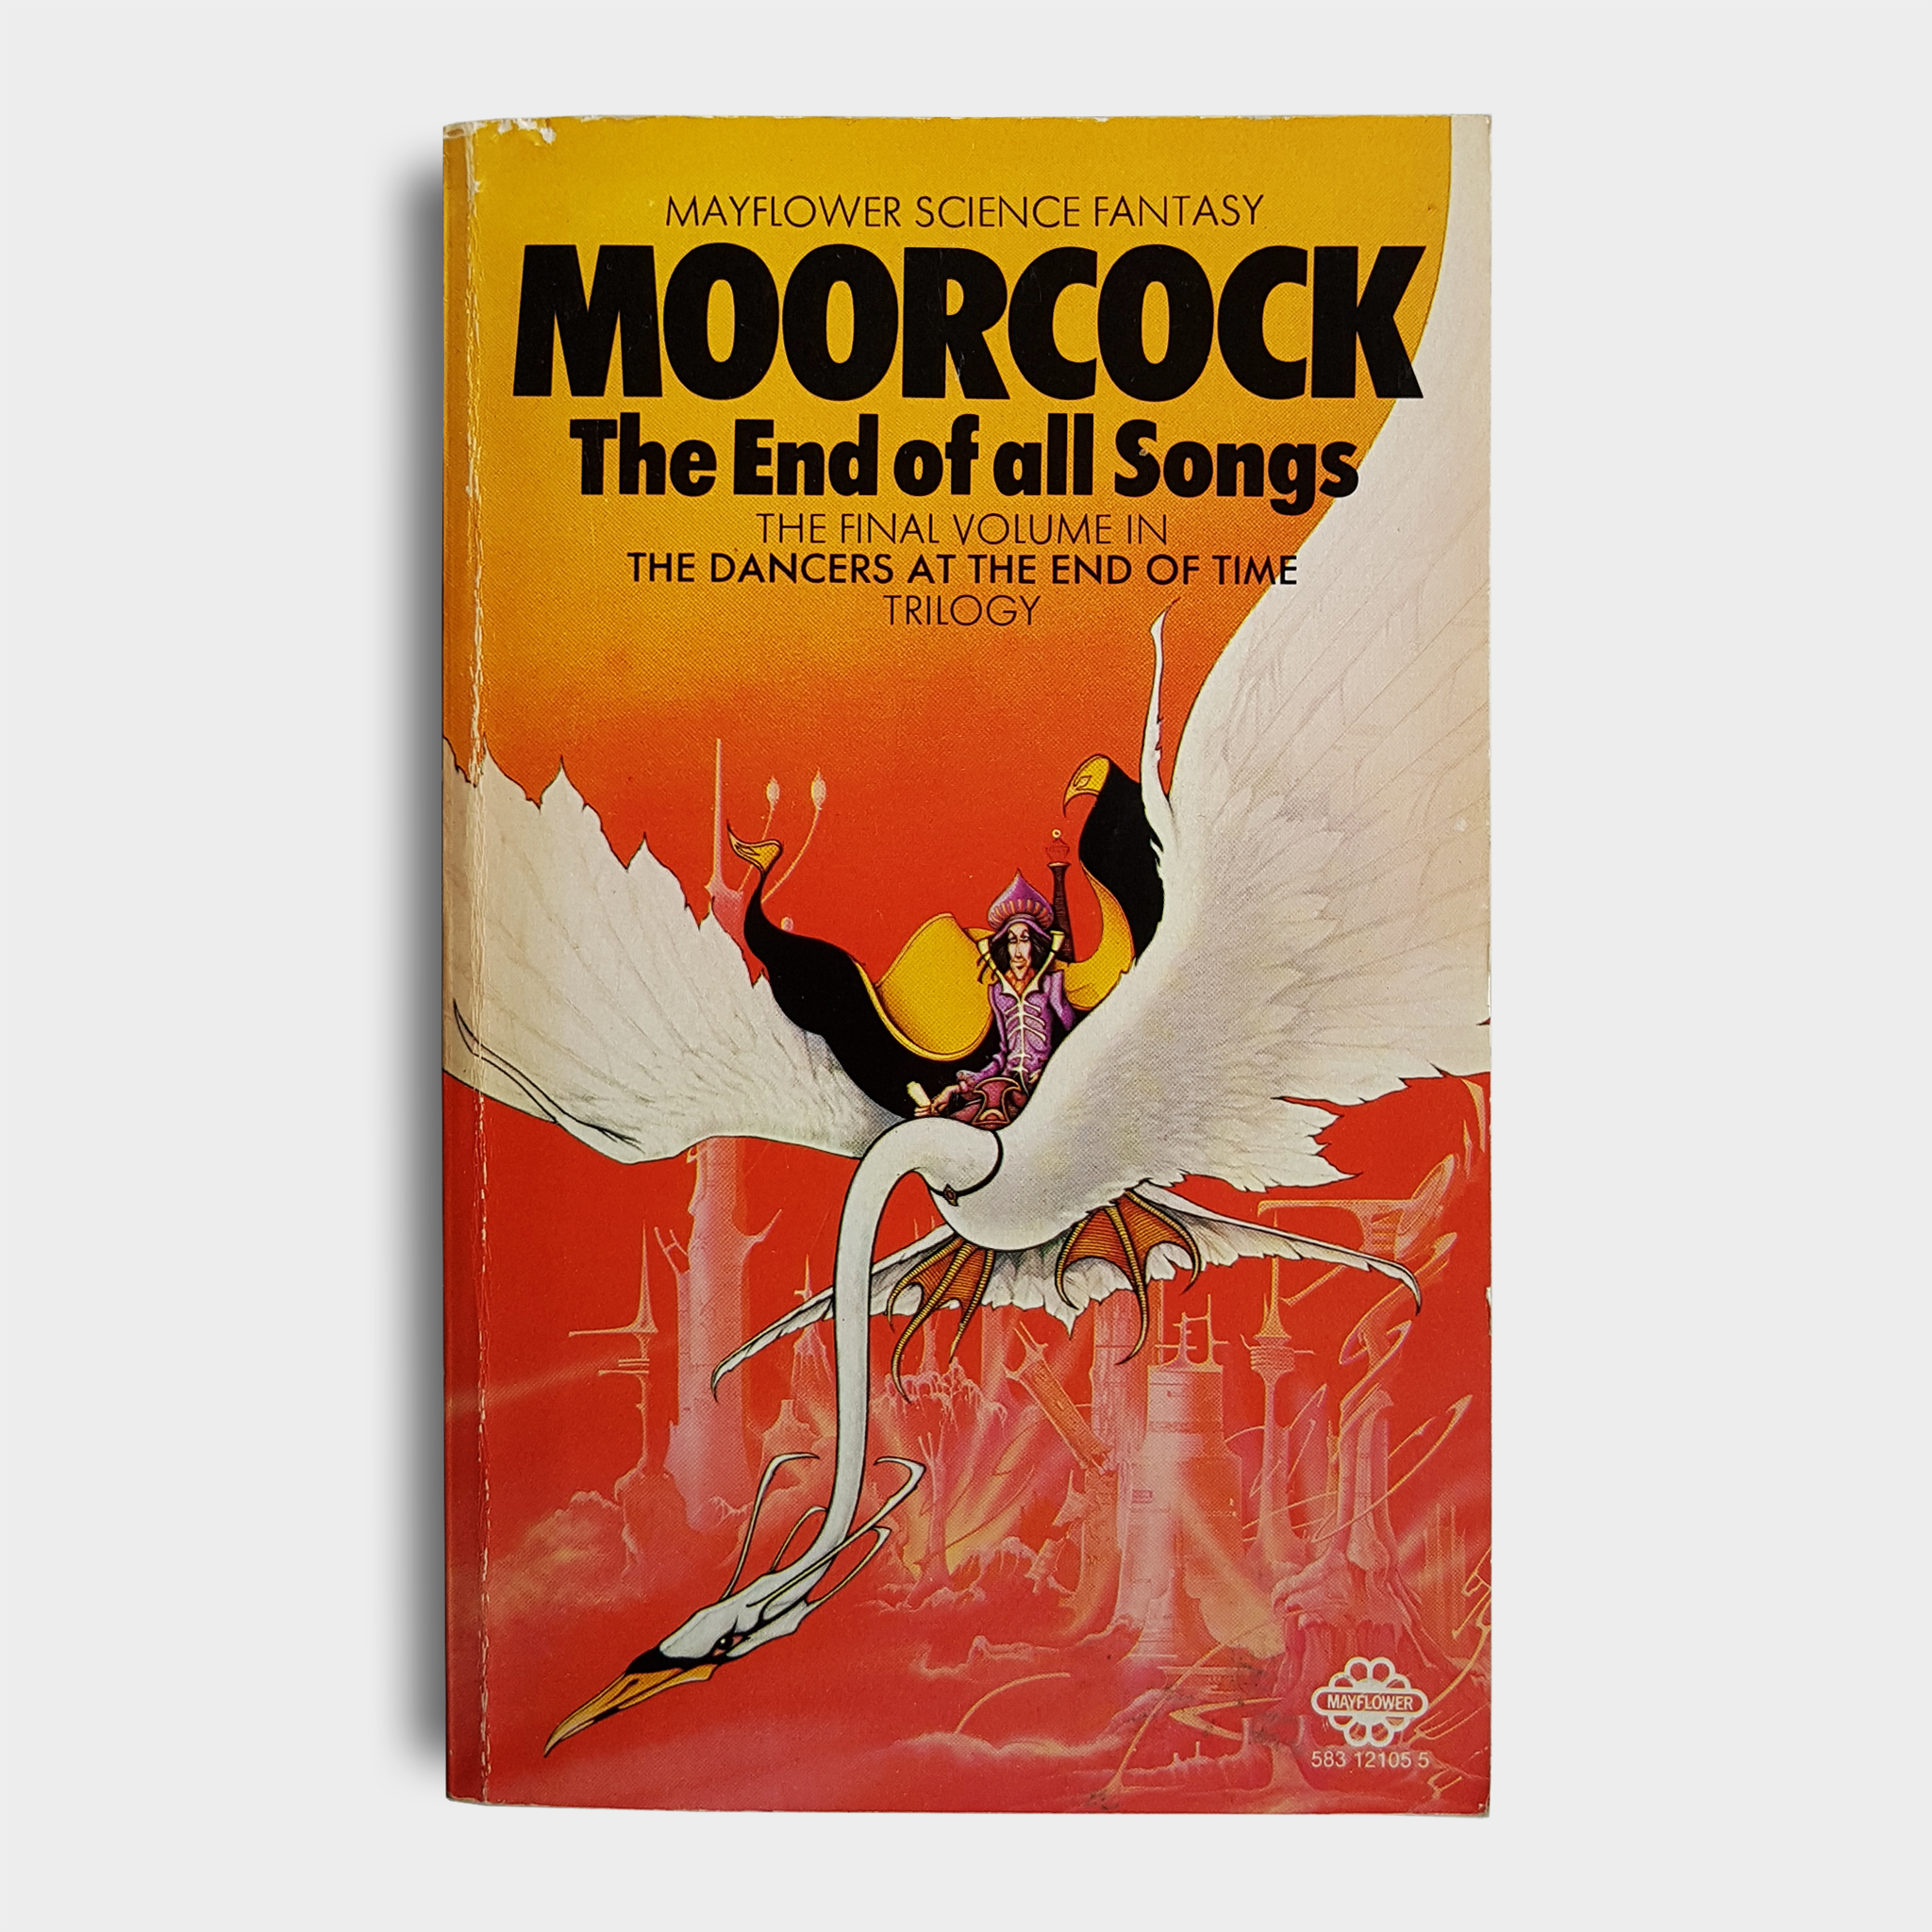 Michael Moorcock - The End of all Songs